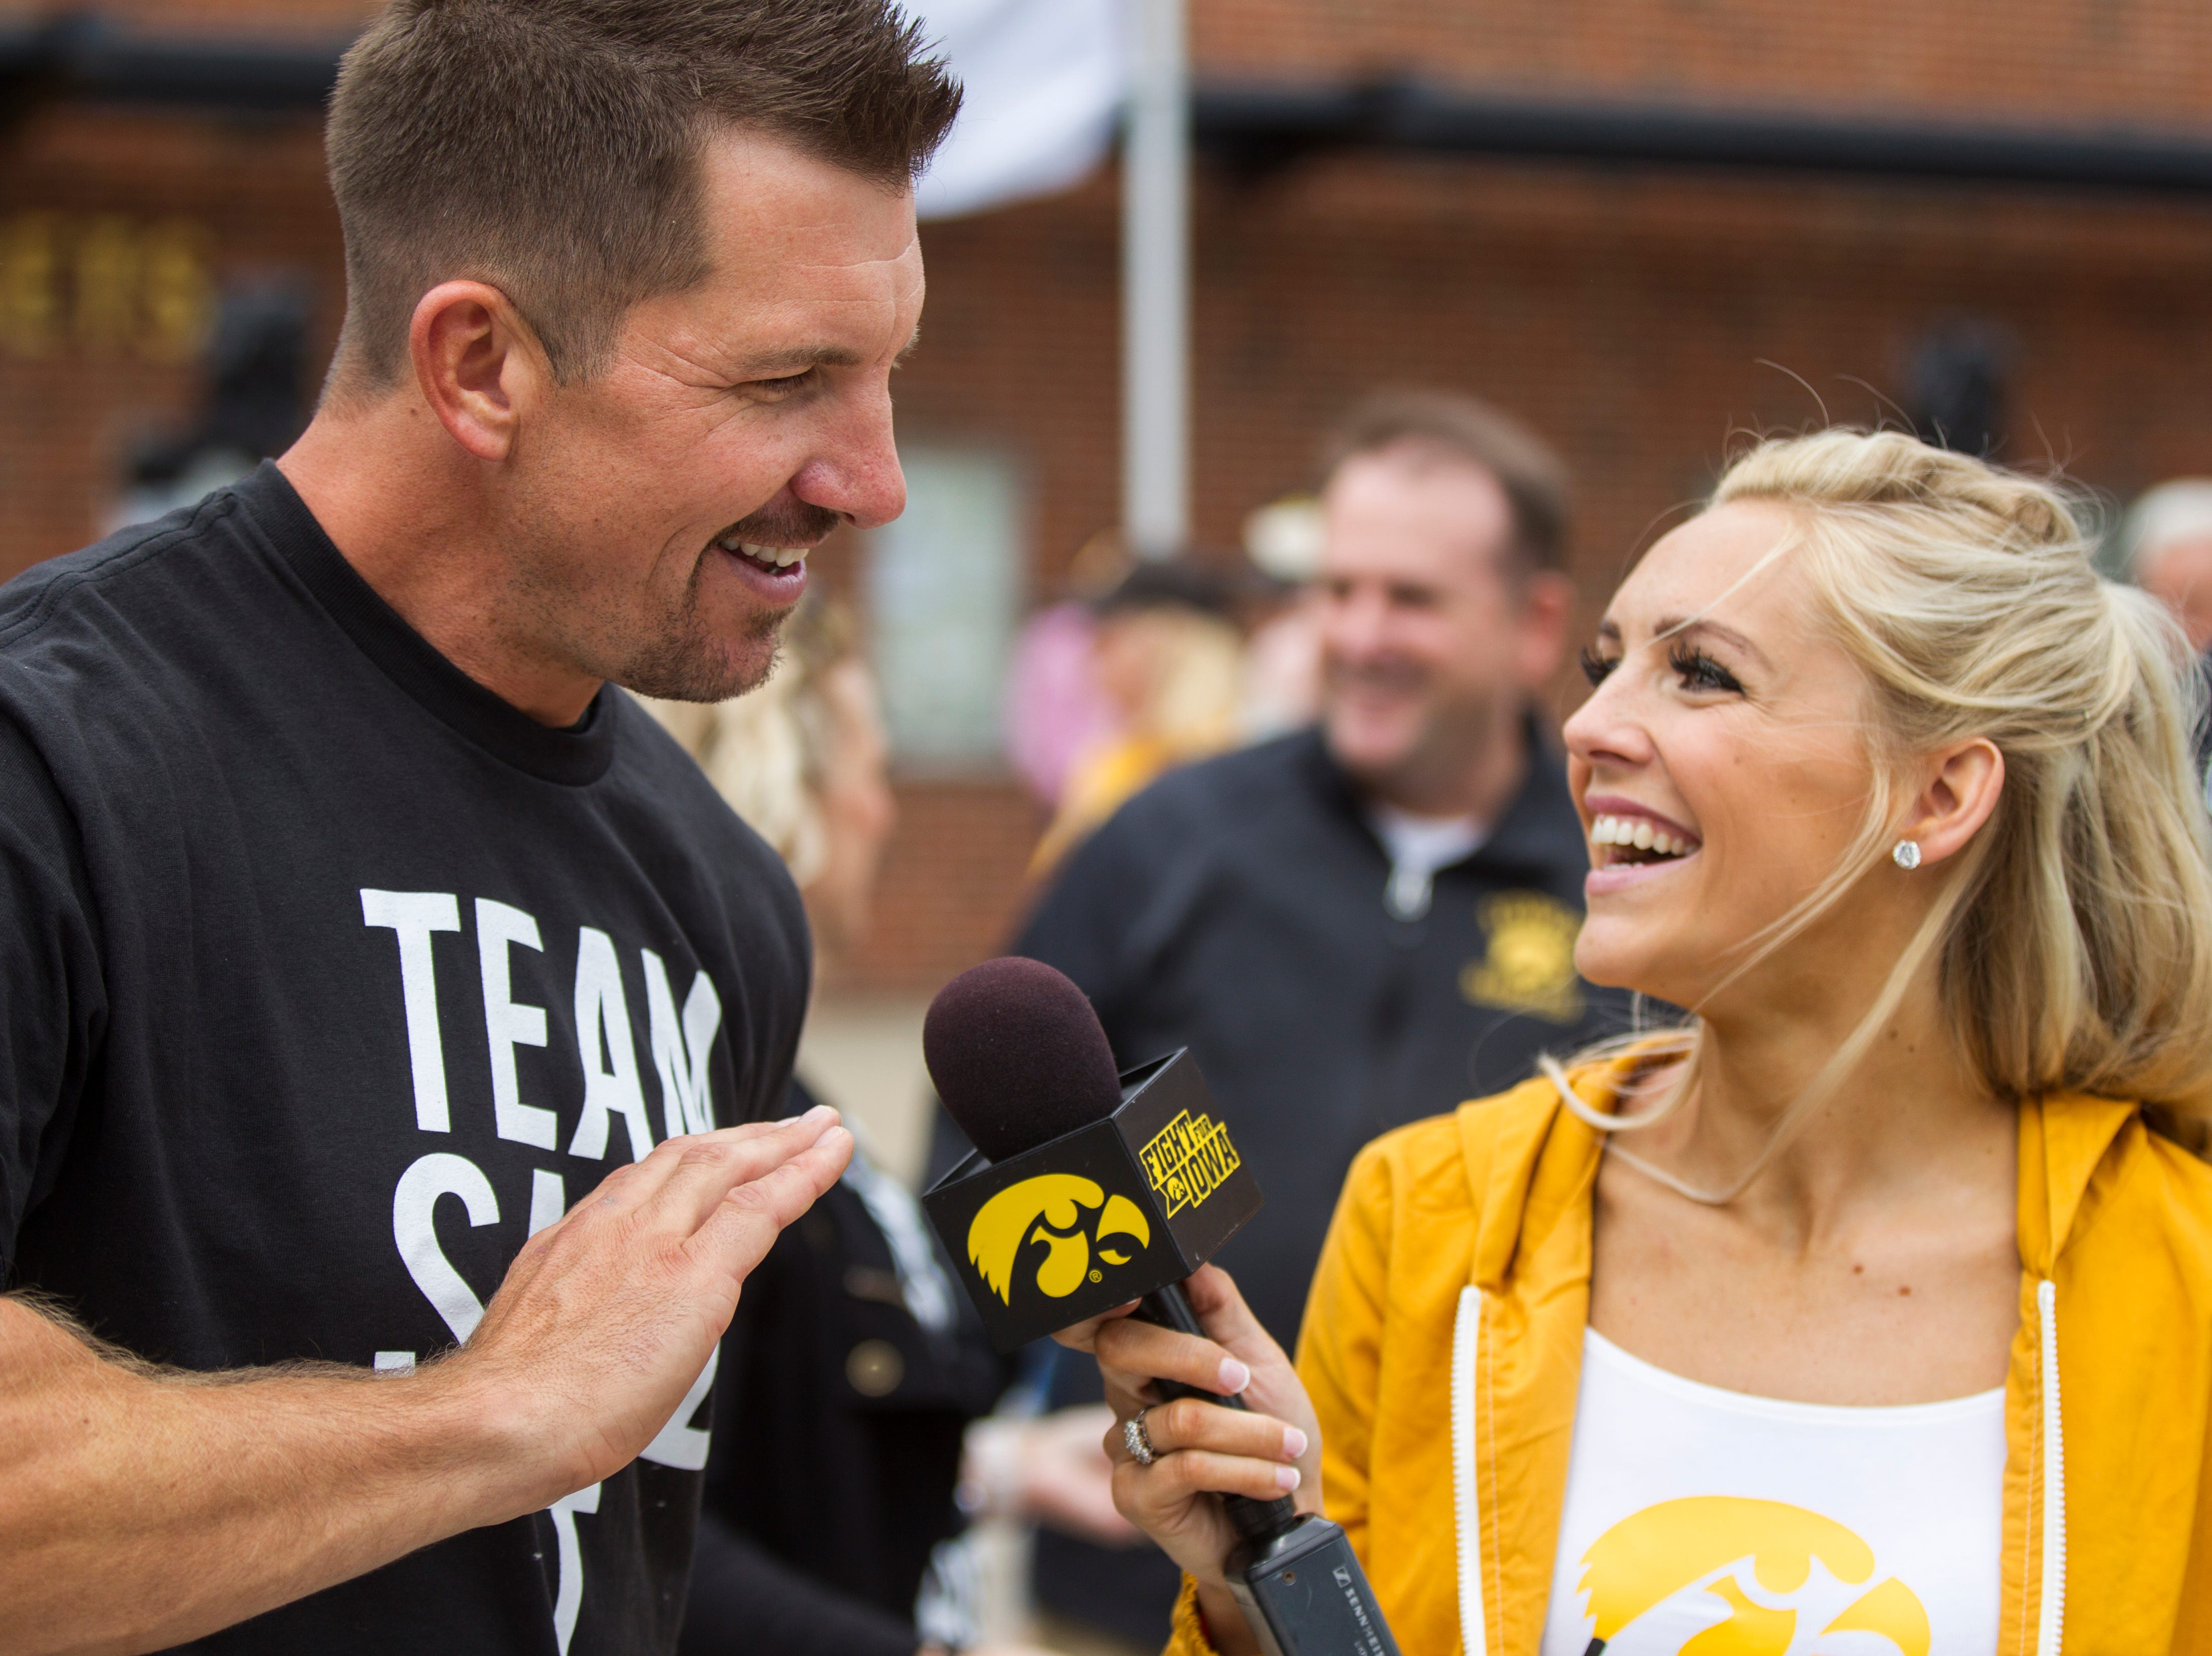 Dallas Clark speaks with Laura VandeBerg before the Cy-Hawk NCAA football game on Saturday, Sept. 8, 2018, at Kinnick Stadium in Iowa City.